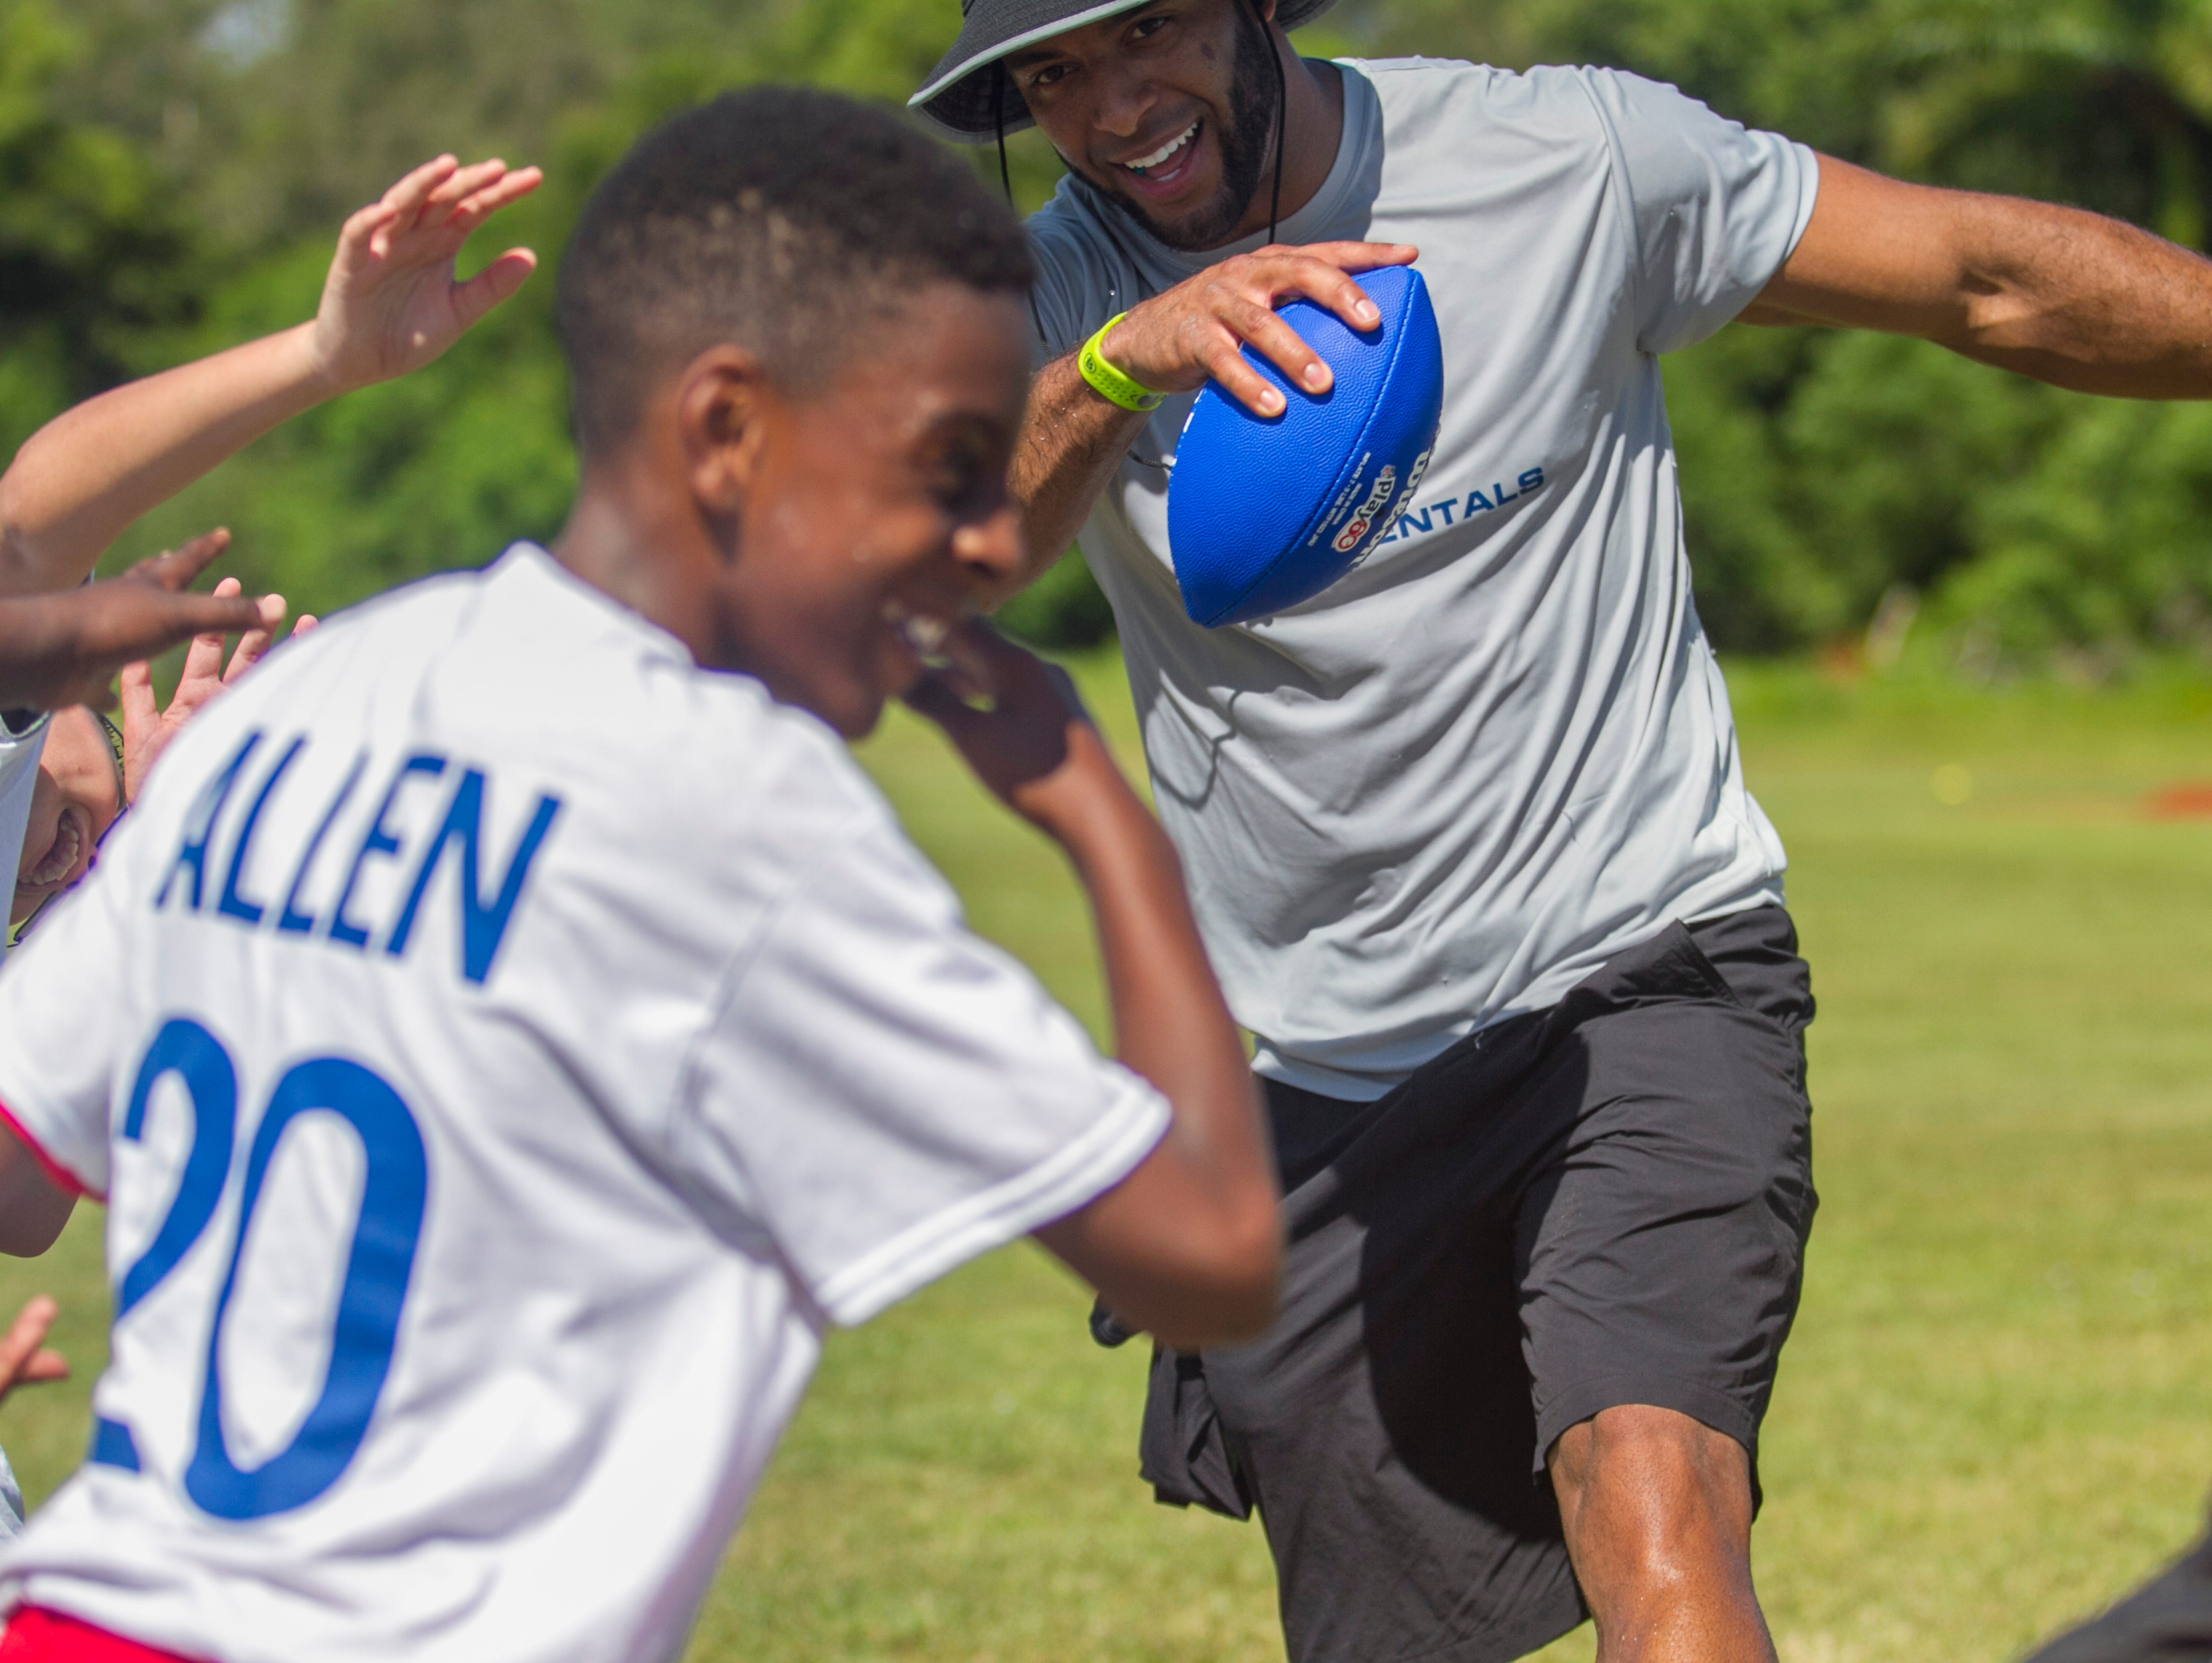 Nate Allen dabs with a group during his free youth football camp at McGregor Baptist Church on Saturday in Fort Myers.